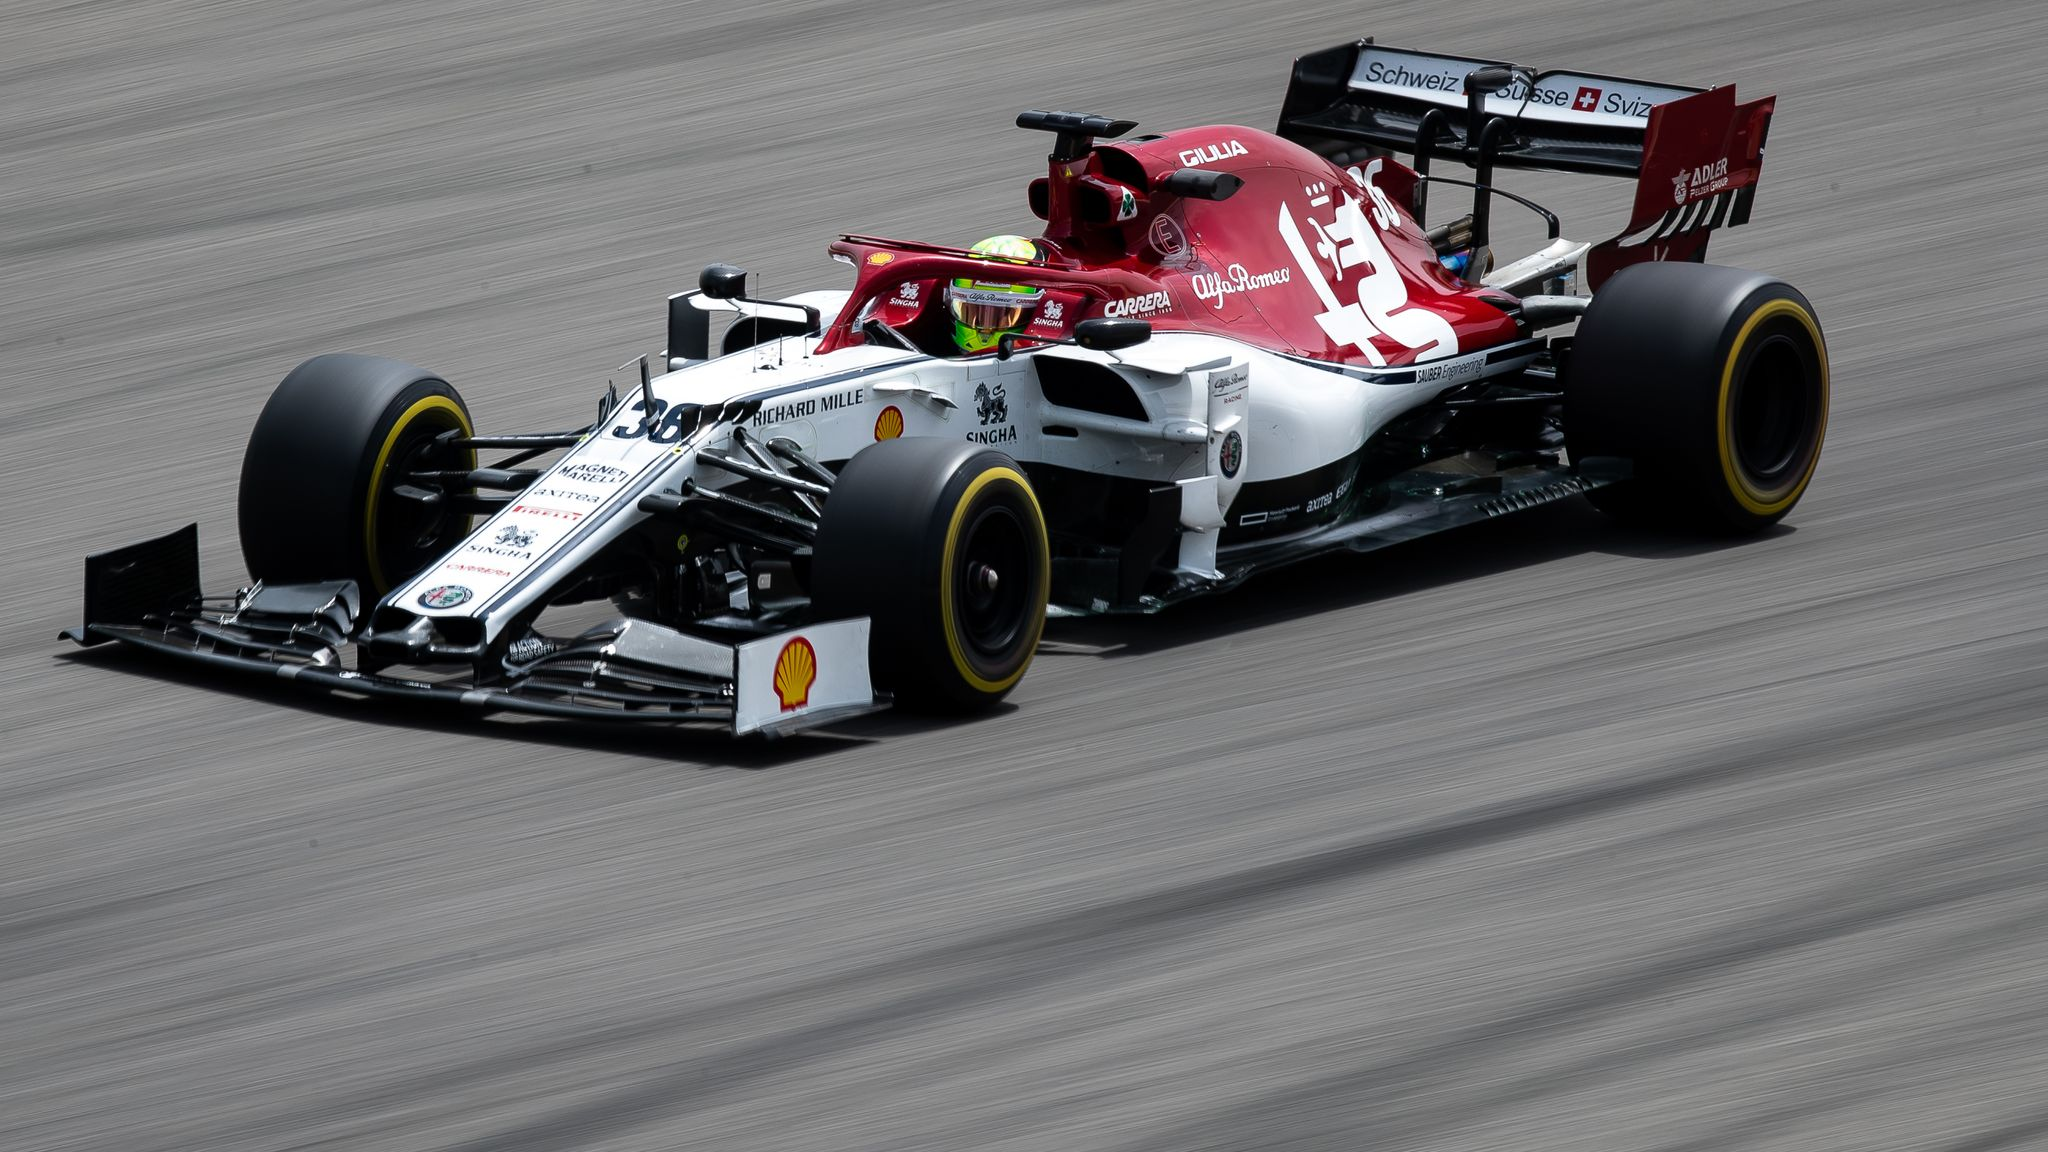 Bahrain Test George Russell Fastest For Mercedes Mick Schumacher Sixth In The Alfa Romeo F1 News